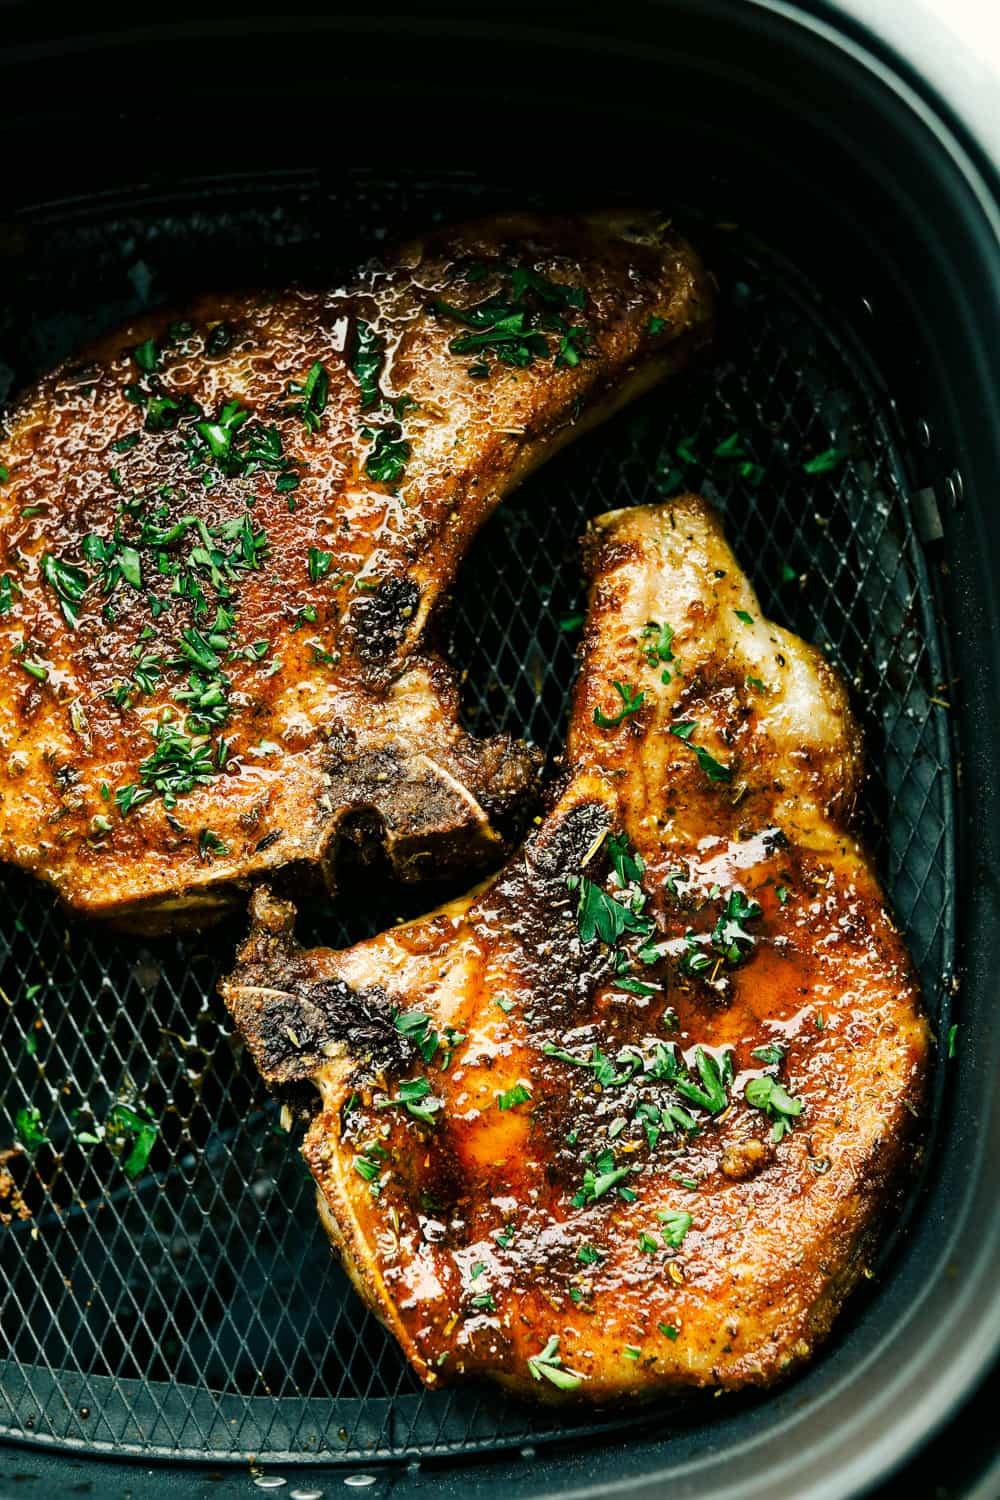 Juicy and flavorful Air Fryer Pork Chops.